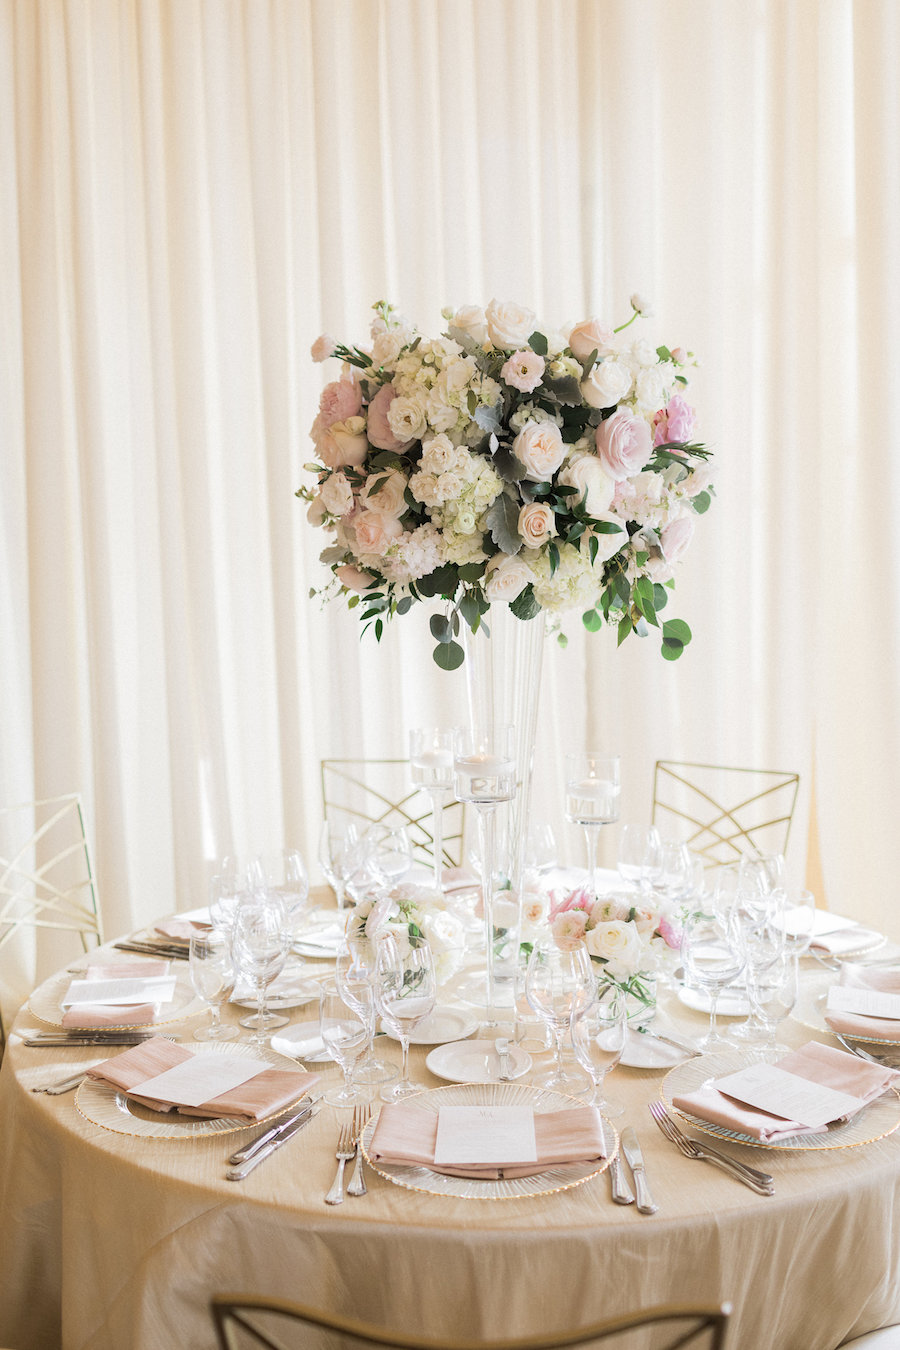 Sophisticated Soiree Featured on Inside Weddings1